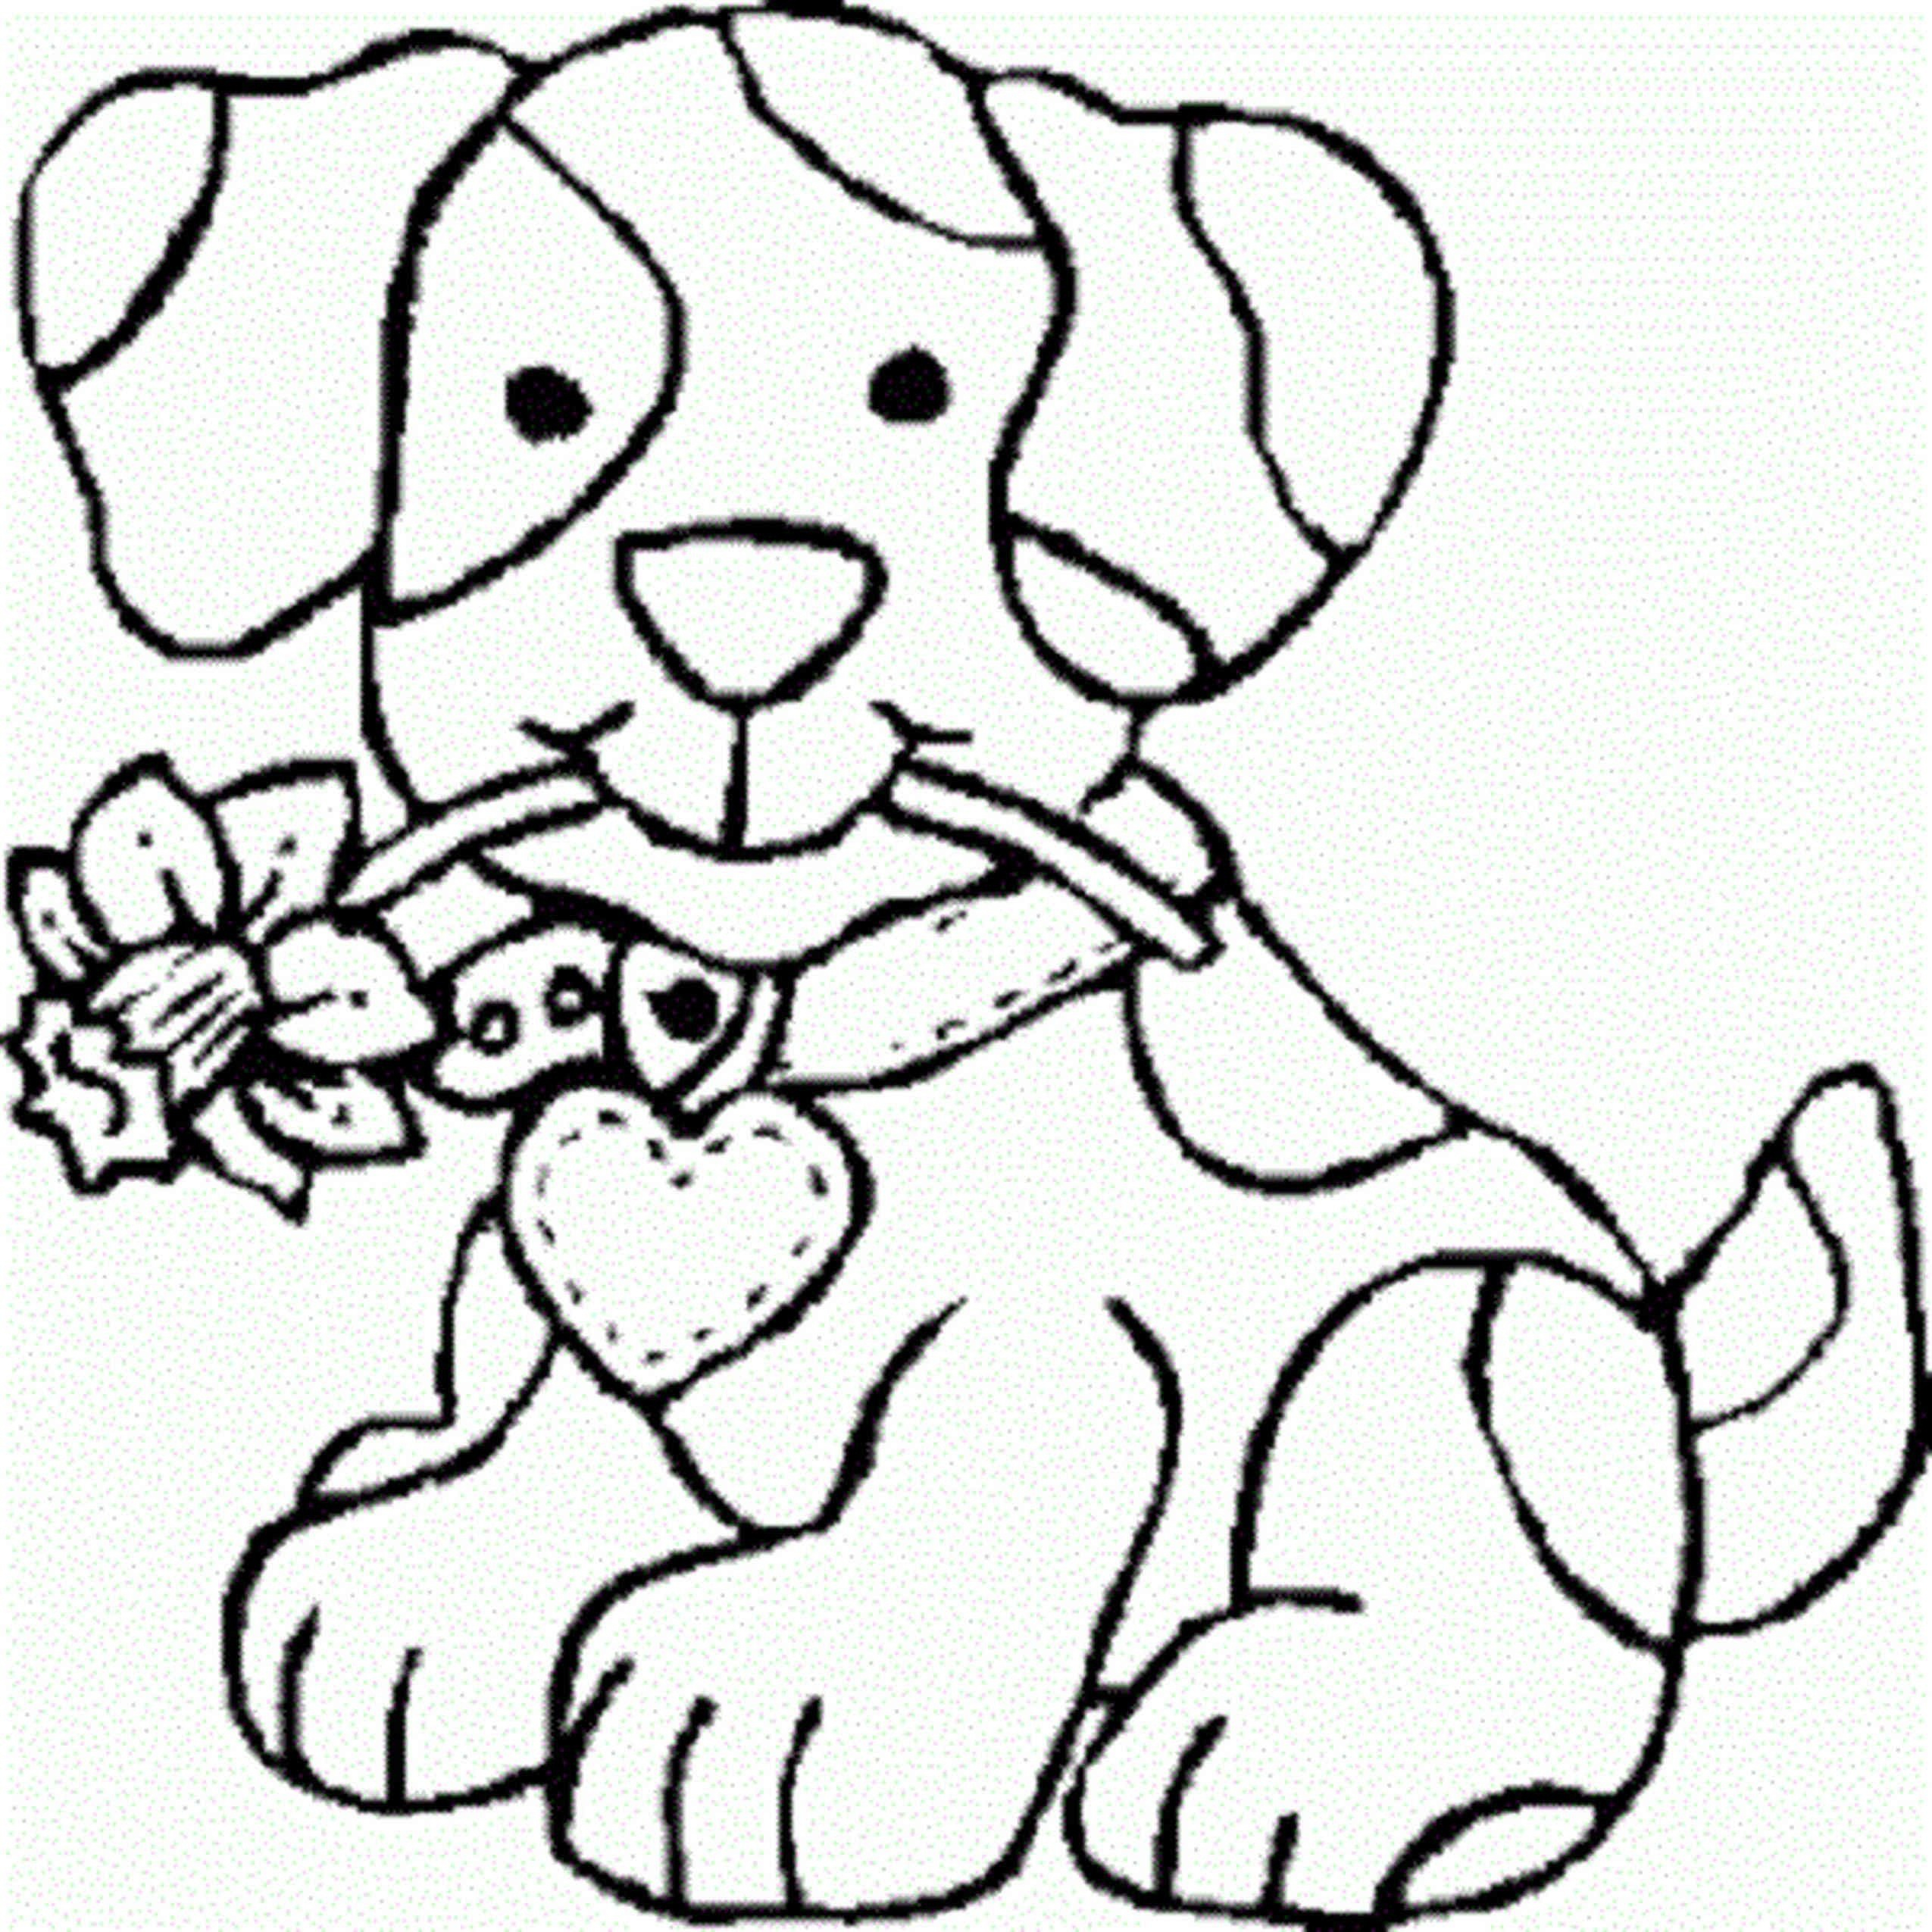 Free Coloring Pages For Girls | Colorings | Coloring Pages For Girls - Colouring Pages Dogs Free Printable